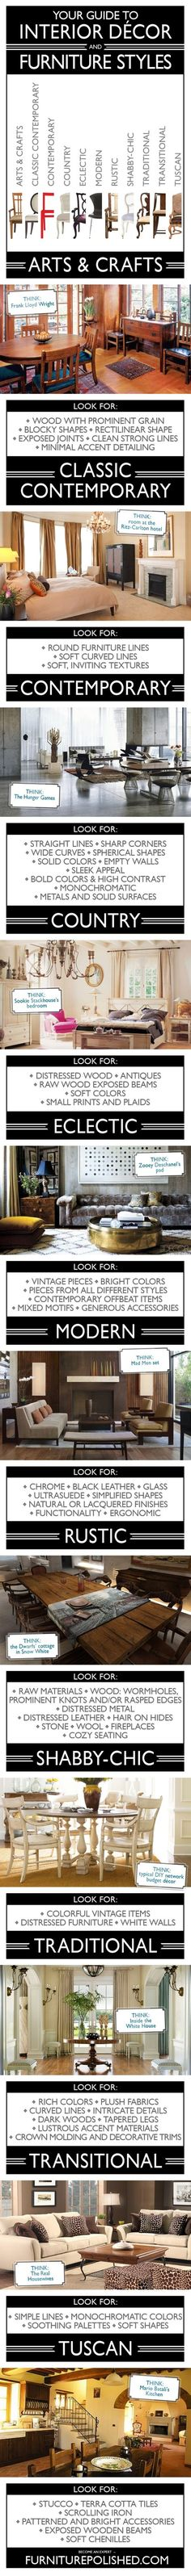 The Ultimate Infographic For Understanding Interior Design Furniture Styles I Am So A Mix Of Classic Contemporary And Arts Crafts